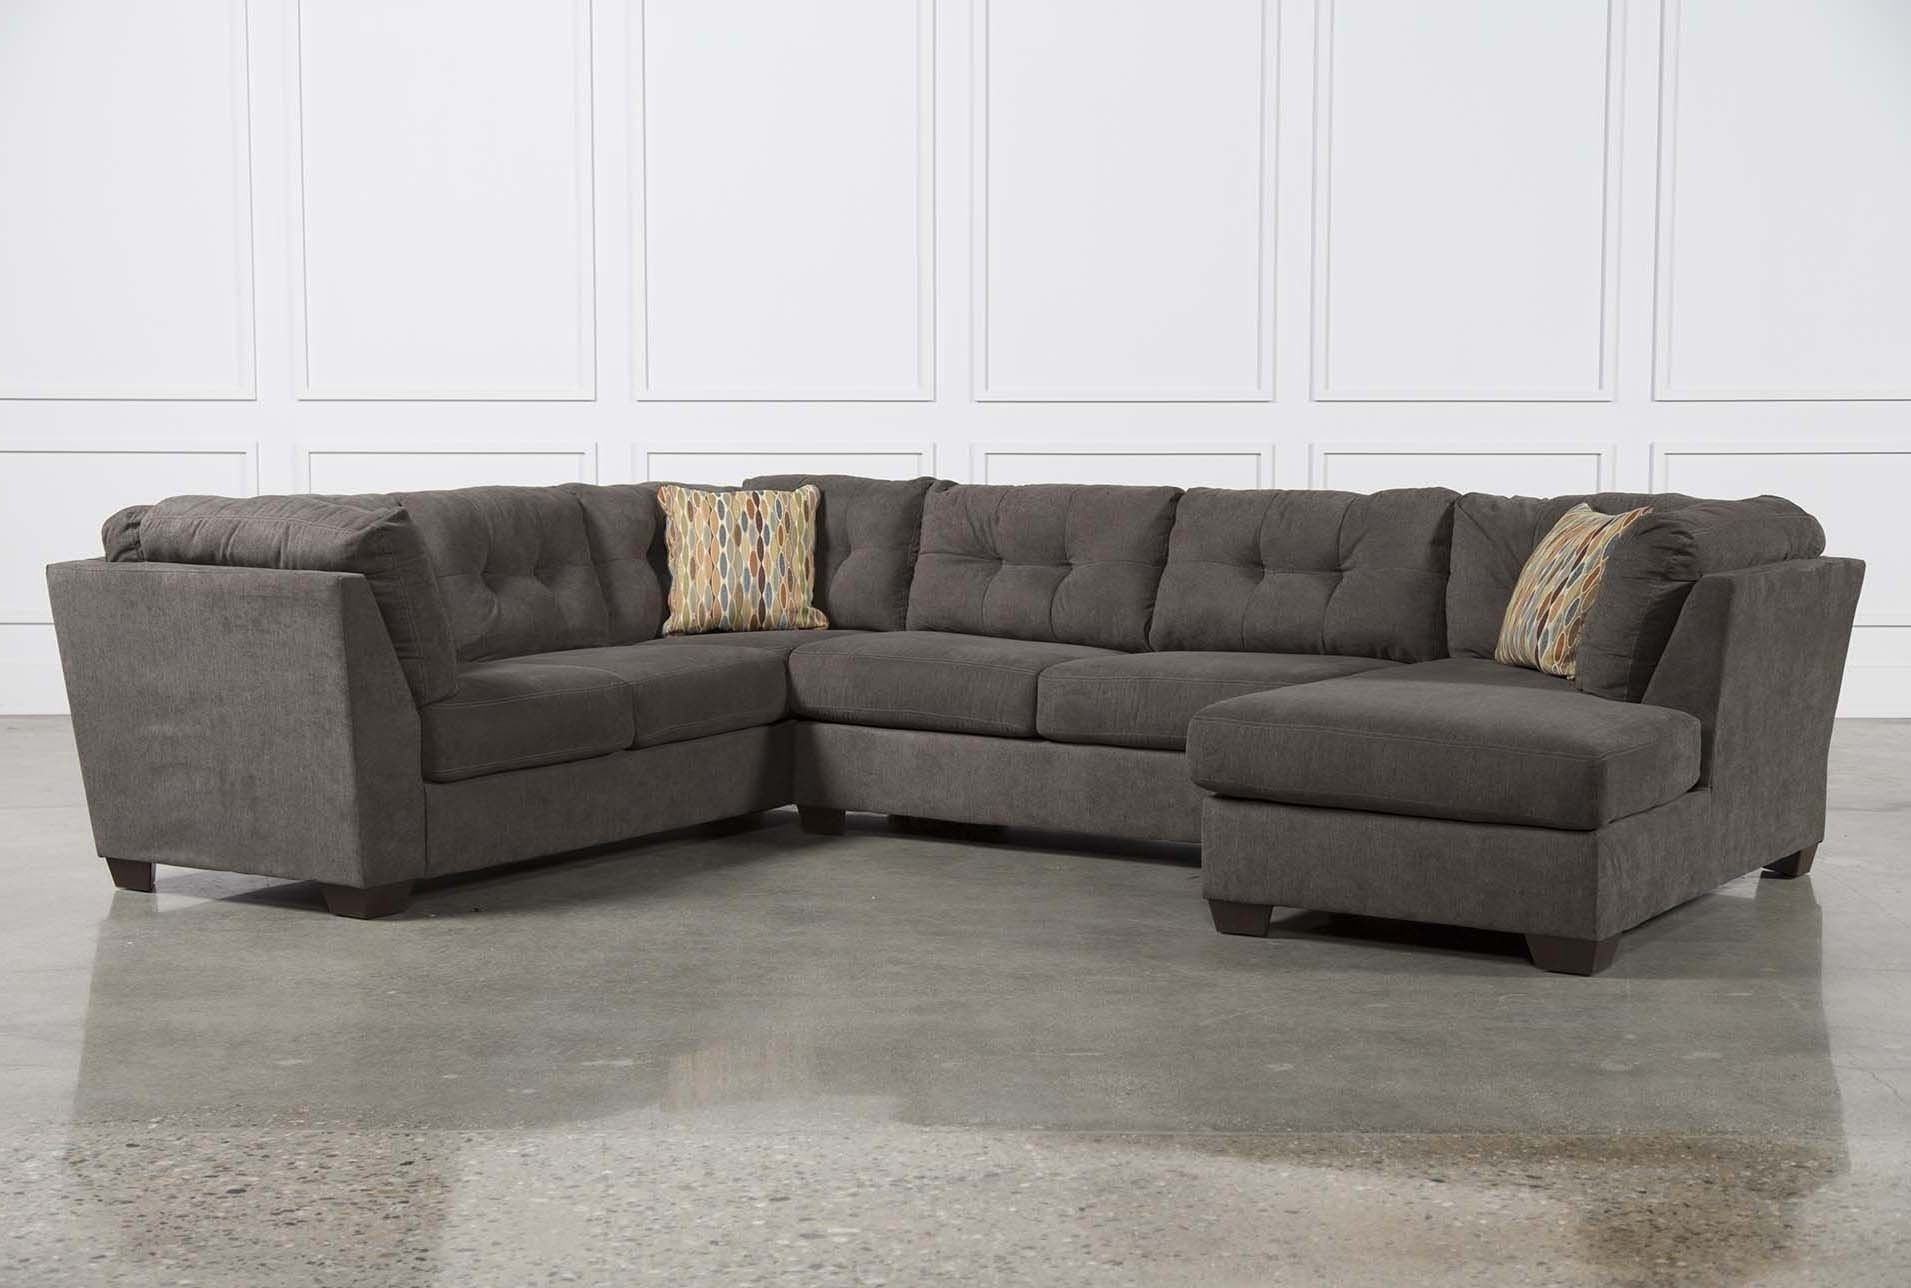 3 Piece Sectional Sleeper Sofas | Sleeper Sofas With Harper Down 3 Piece Sectionals (Image 1 of 25)